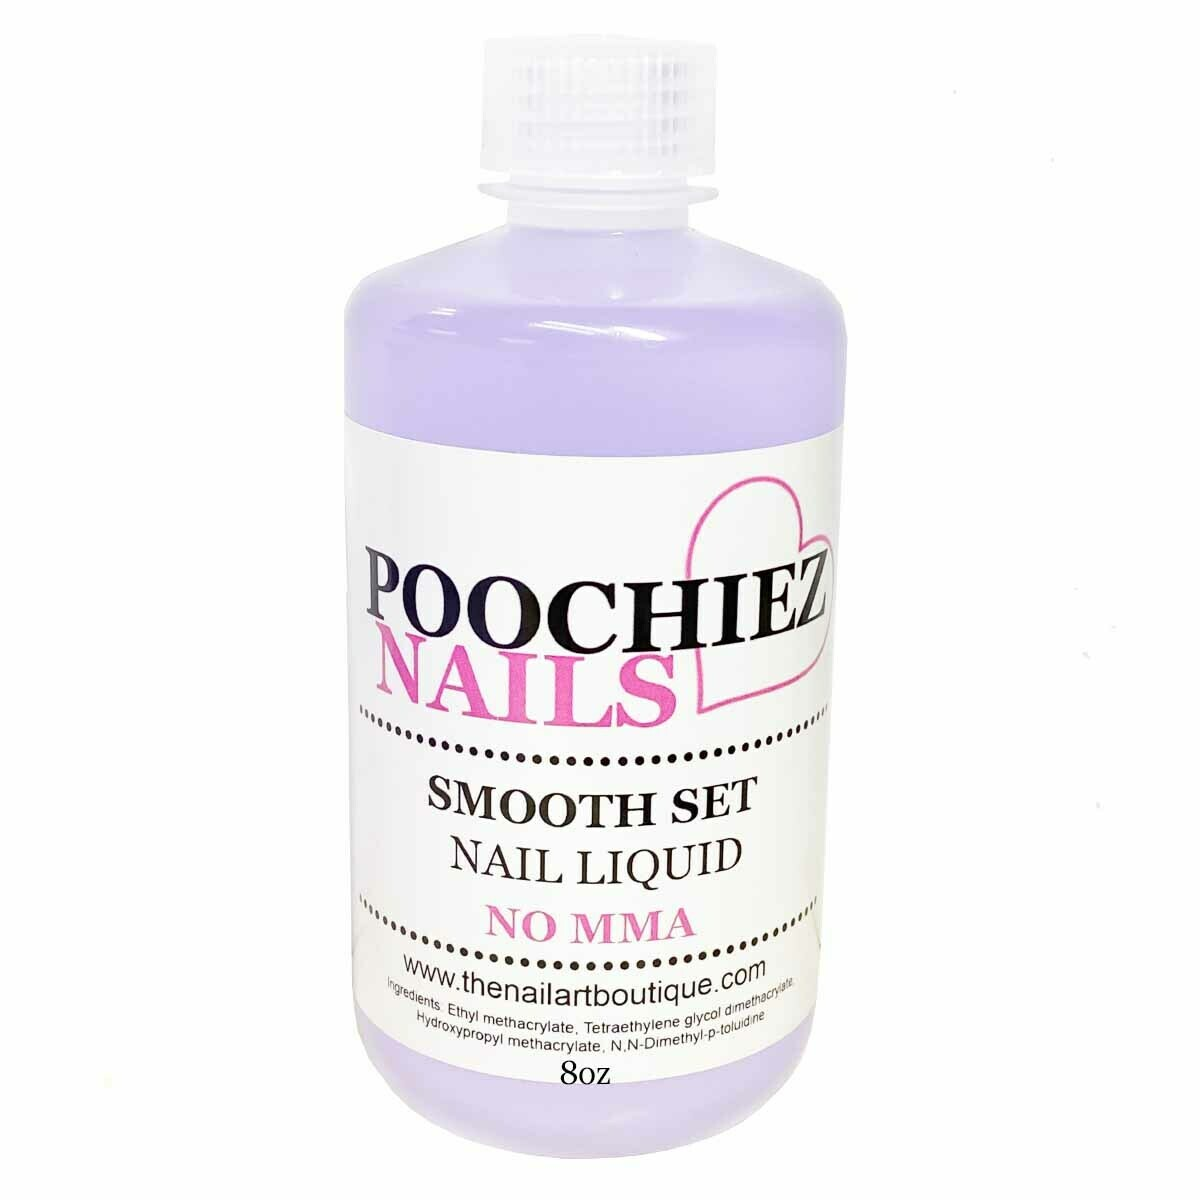 8oz POOCHIEZ NAILS LIQUID MONOMER